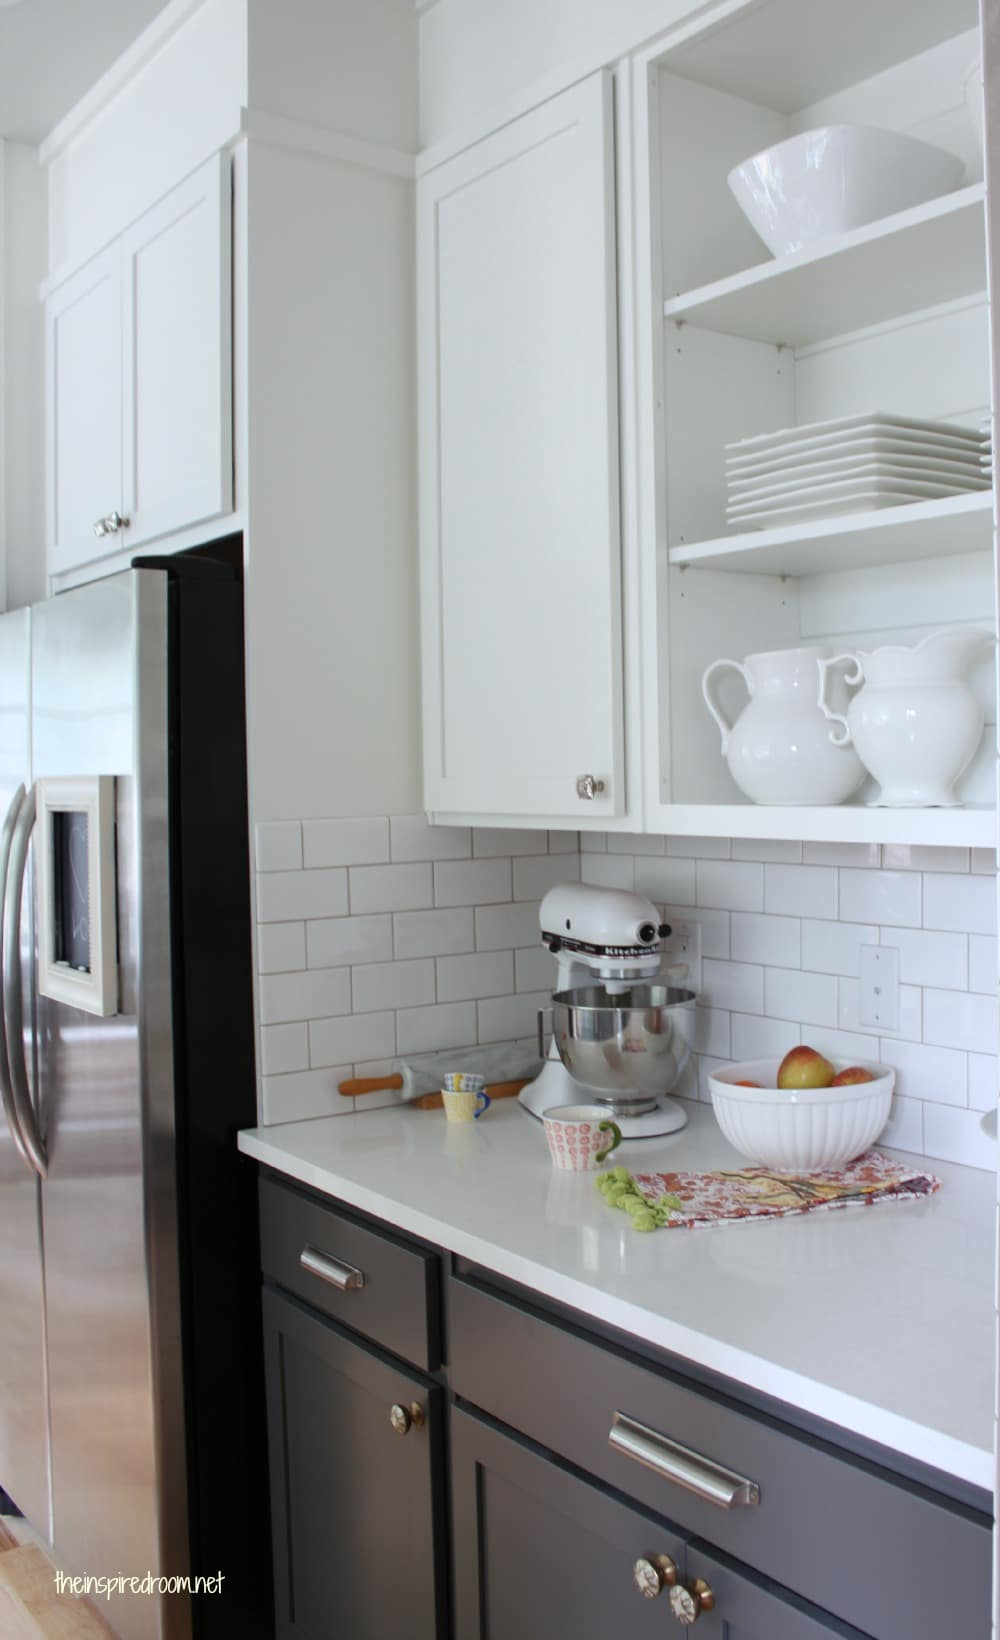 My Kitchen Cabinet Colors {Before & After Cabinets!}